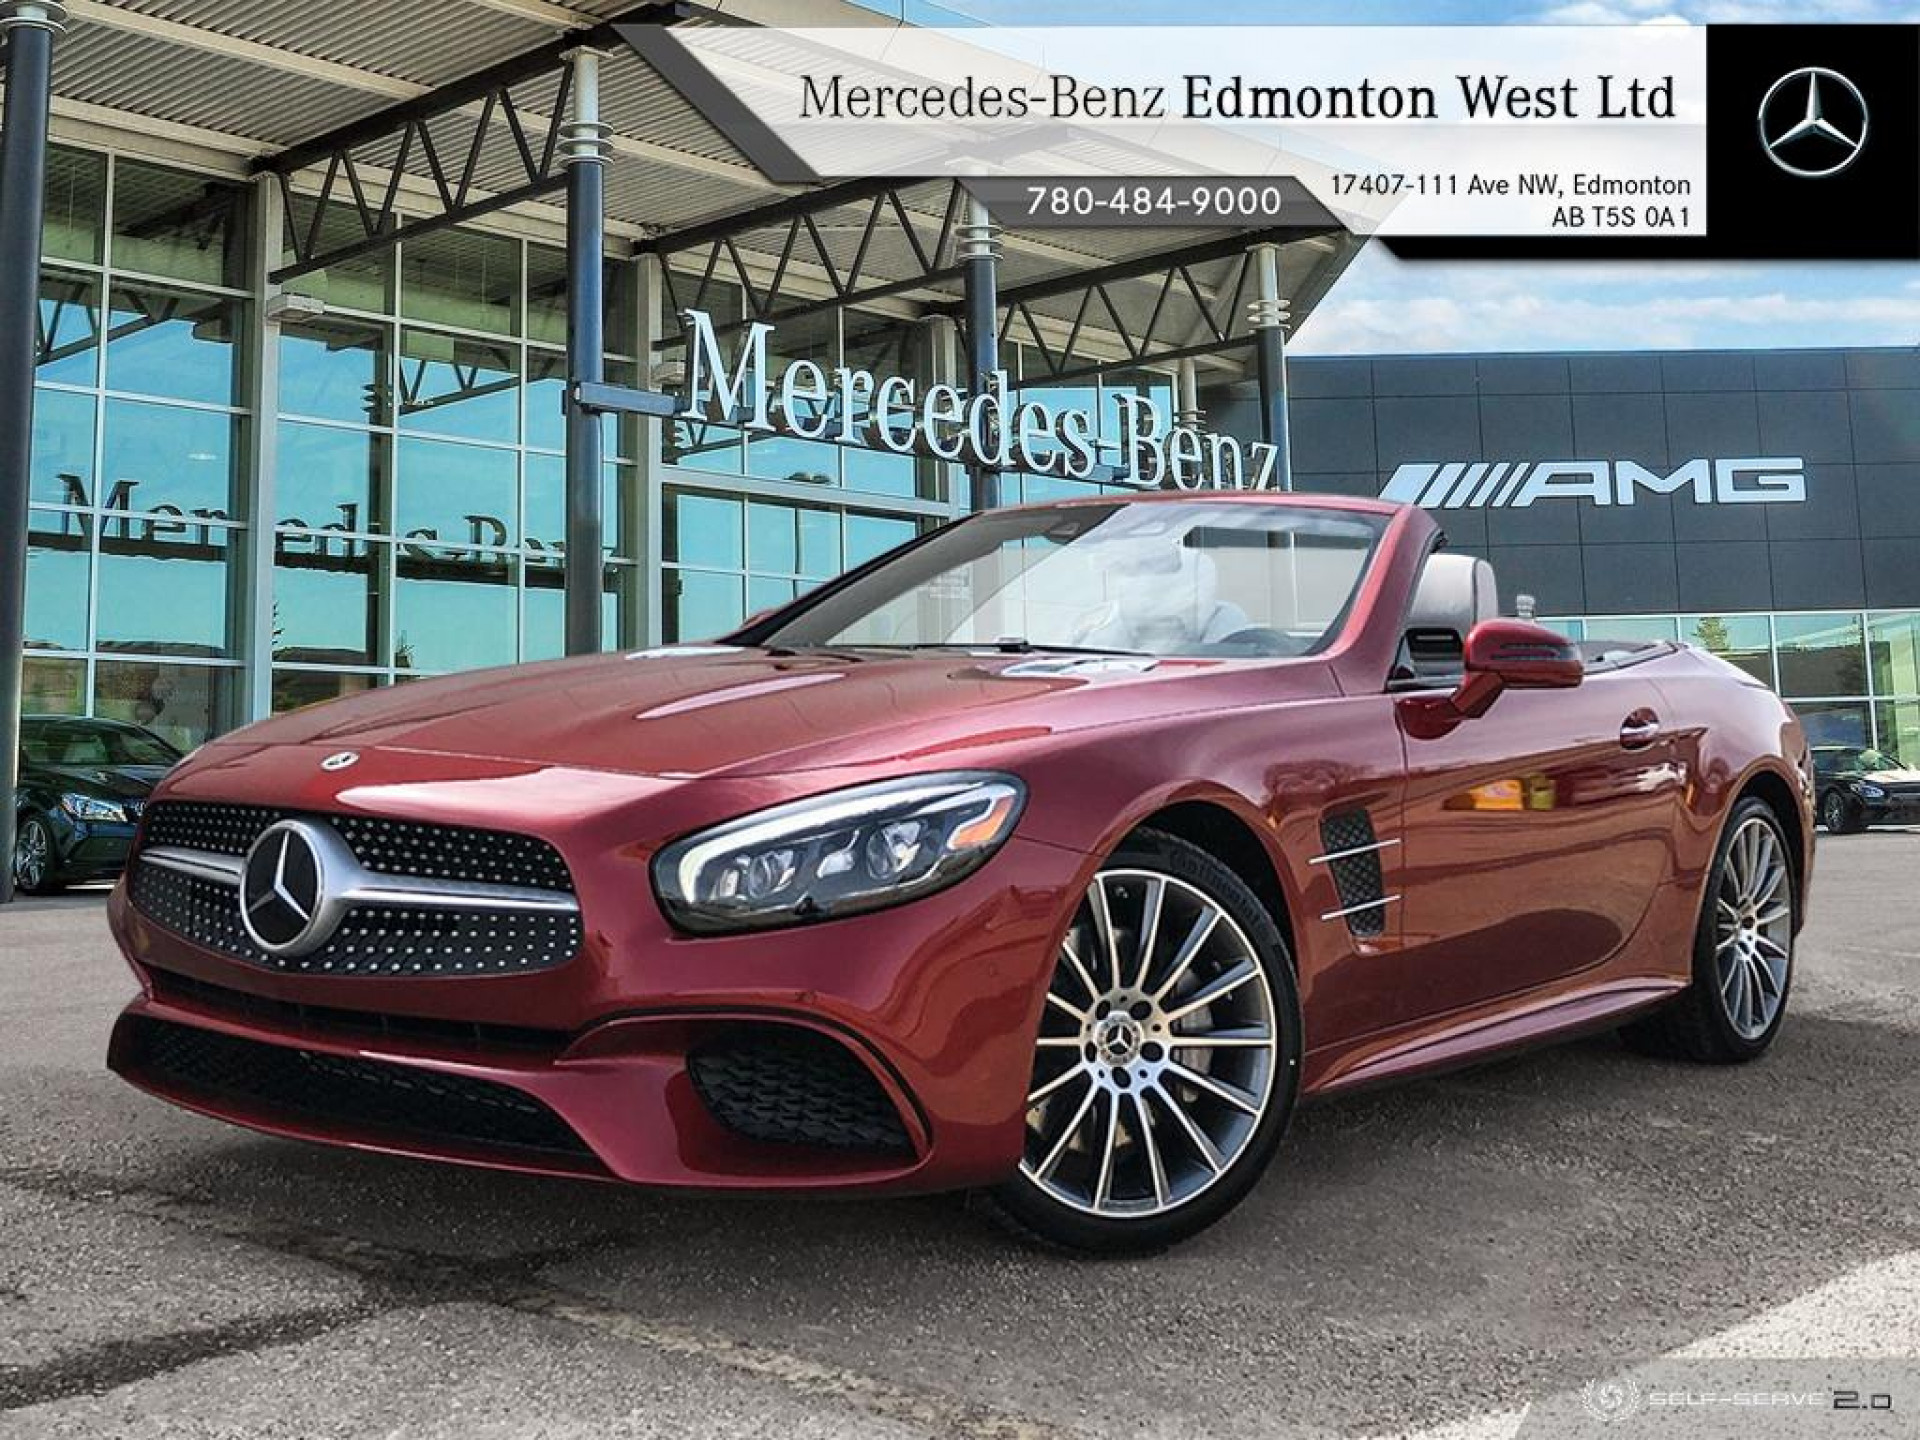 New 2020 Mercedes Benz SL 550 Roadster - Premium Package